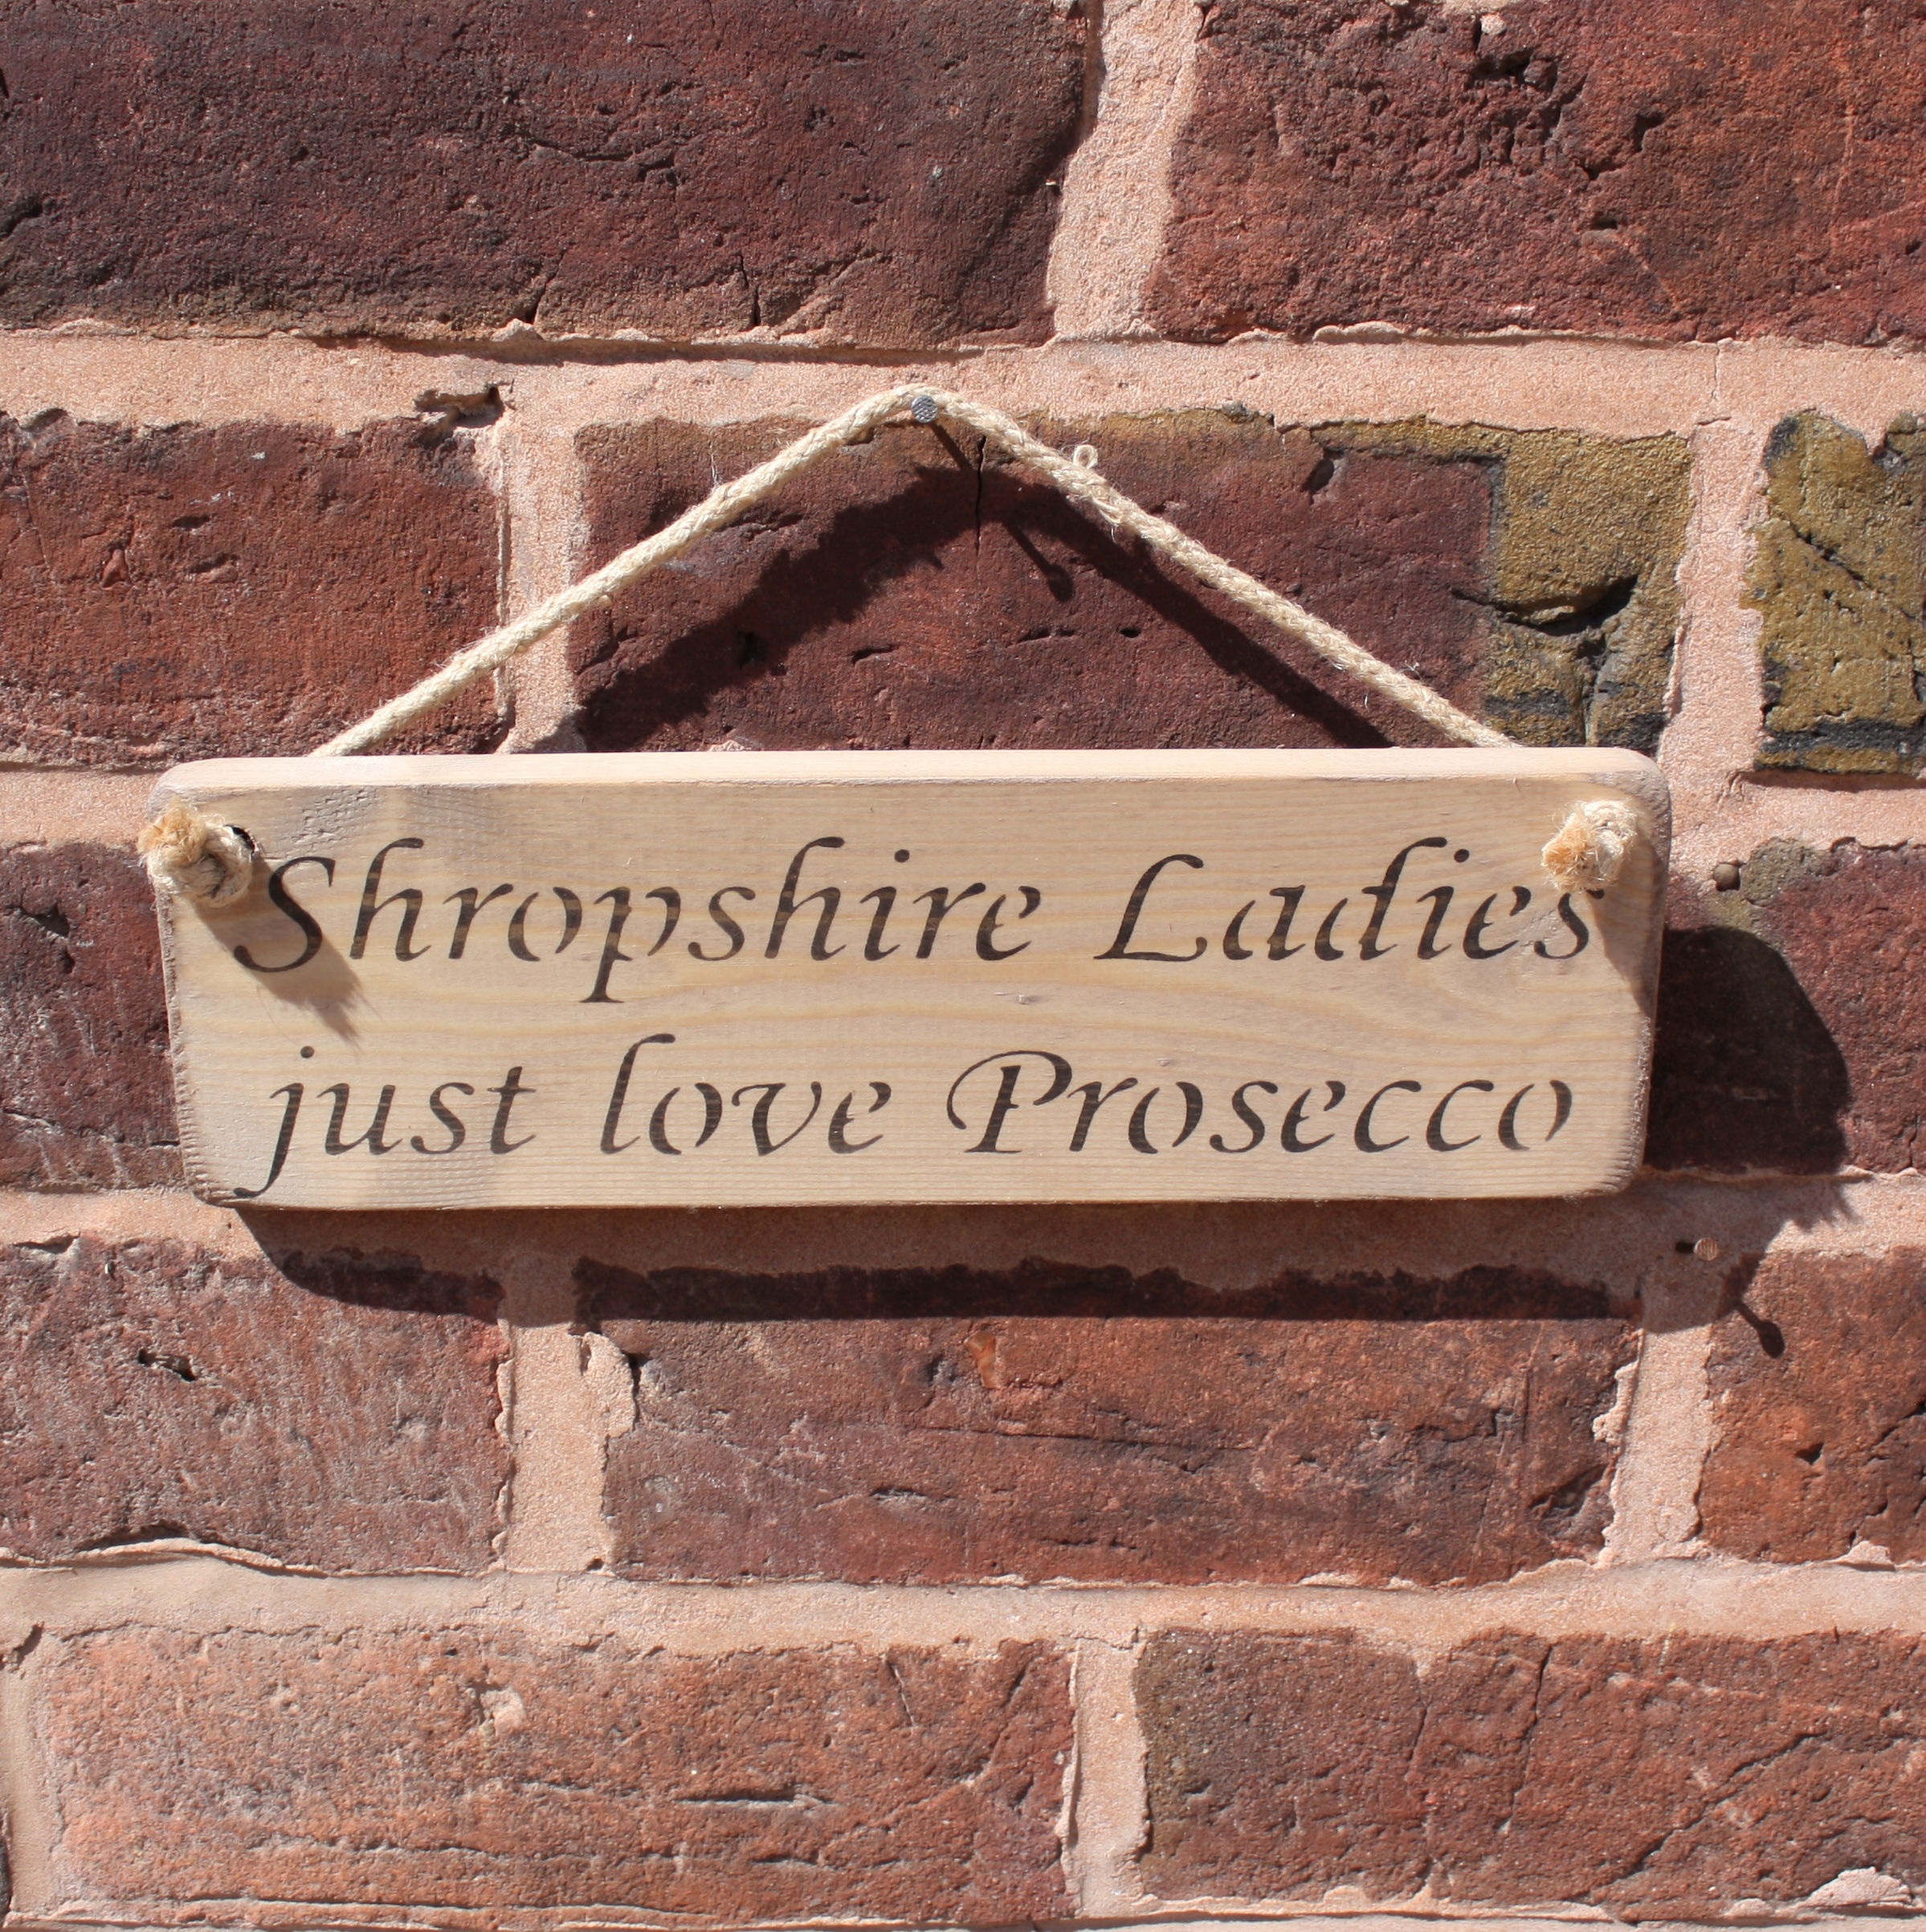 Shropshire Ladies Just Love Prosecco sign